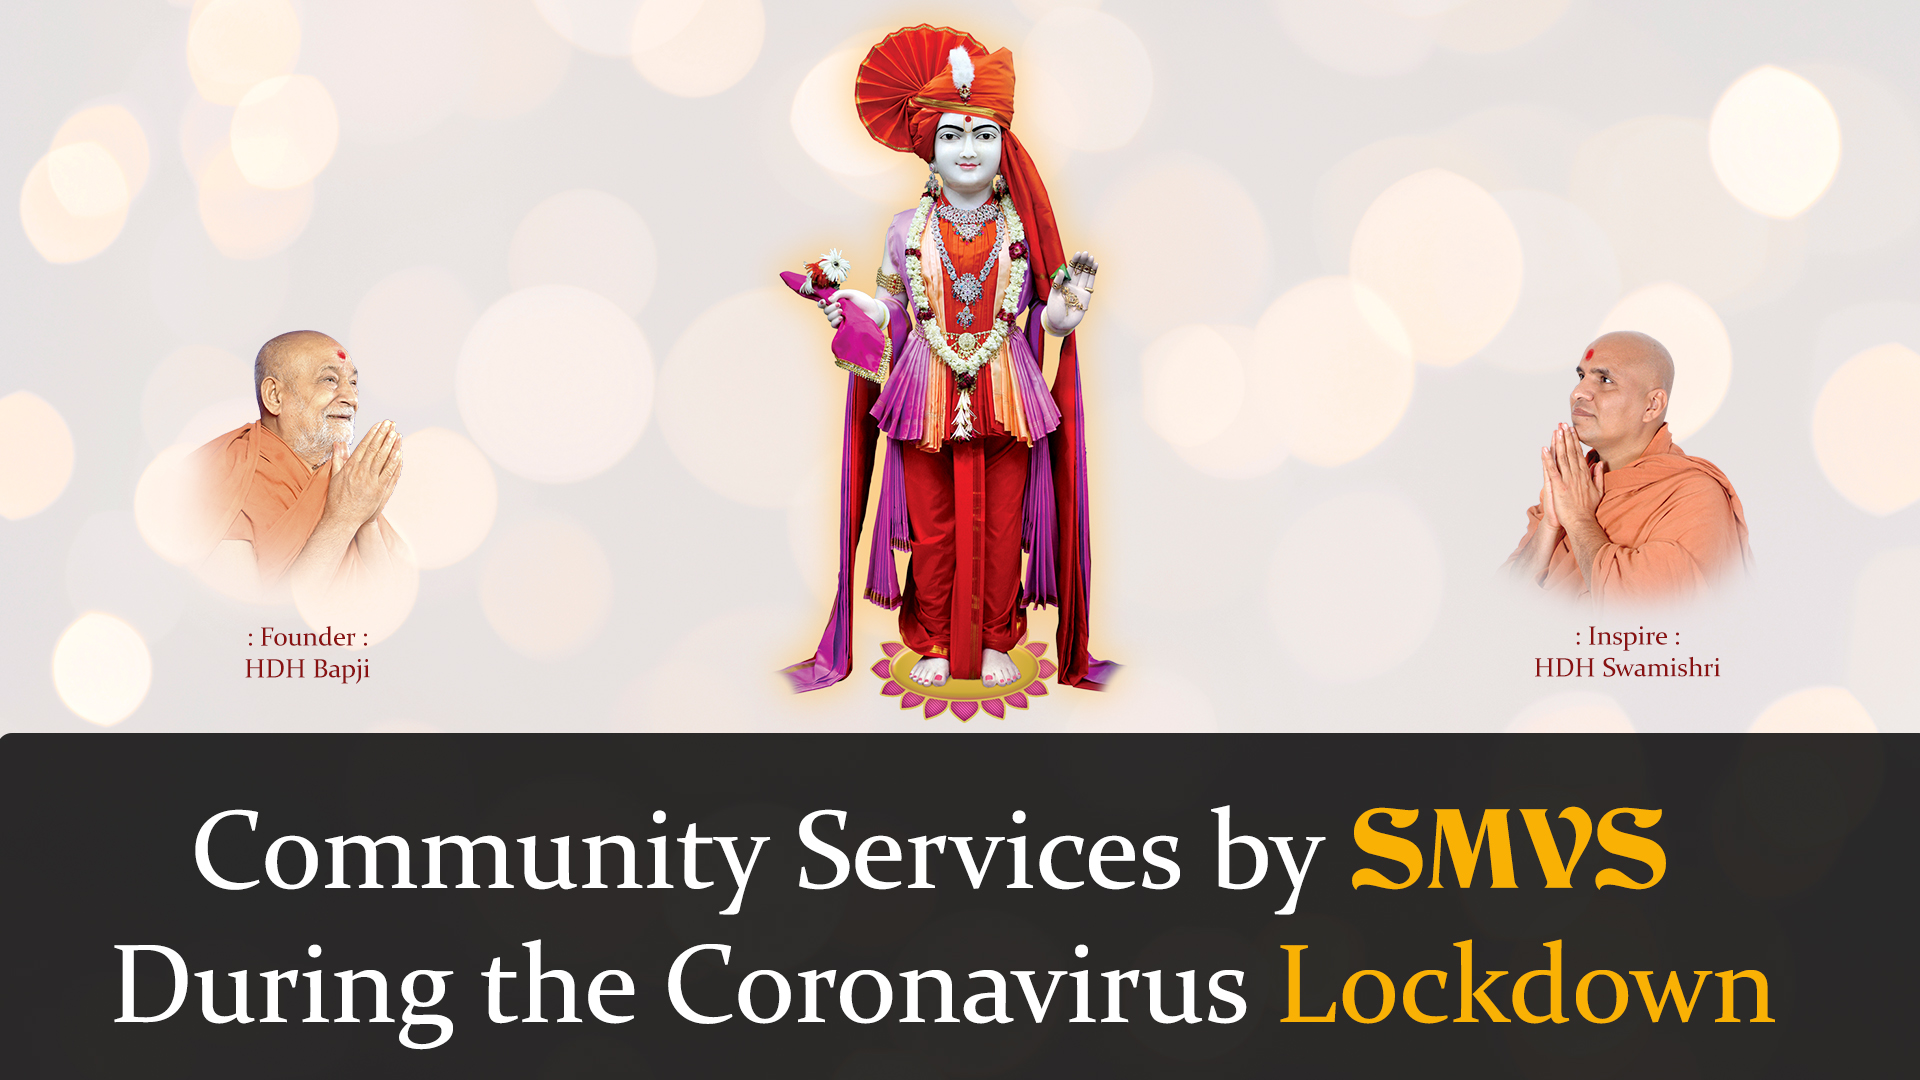 Community Services By SMVS During the Coronavirus Lockdown